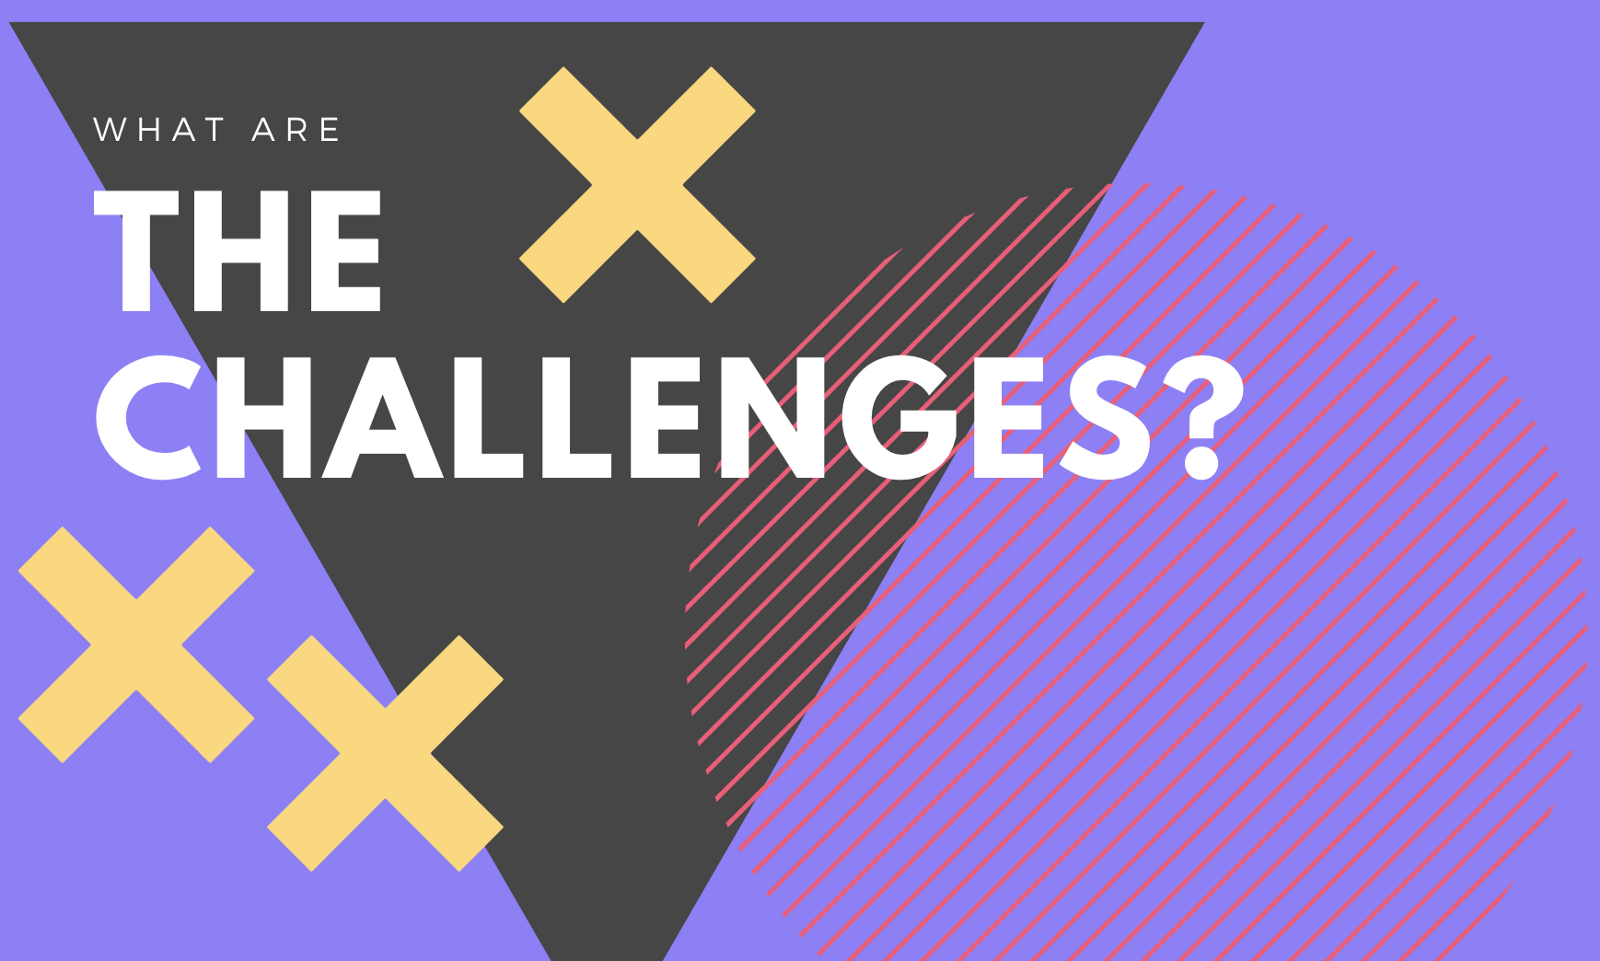 what are the challenges of scrum graphic with pink, yellow gray and purple shapes